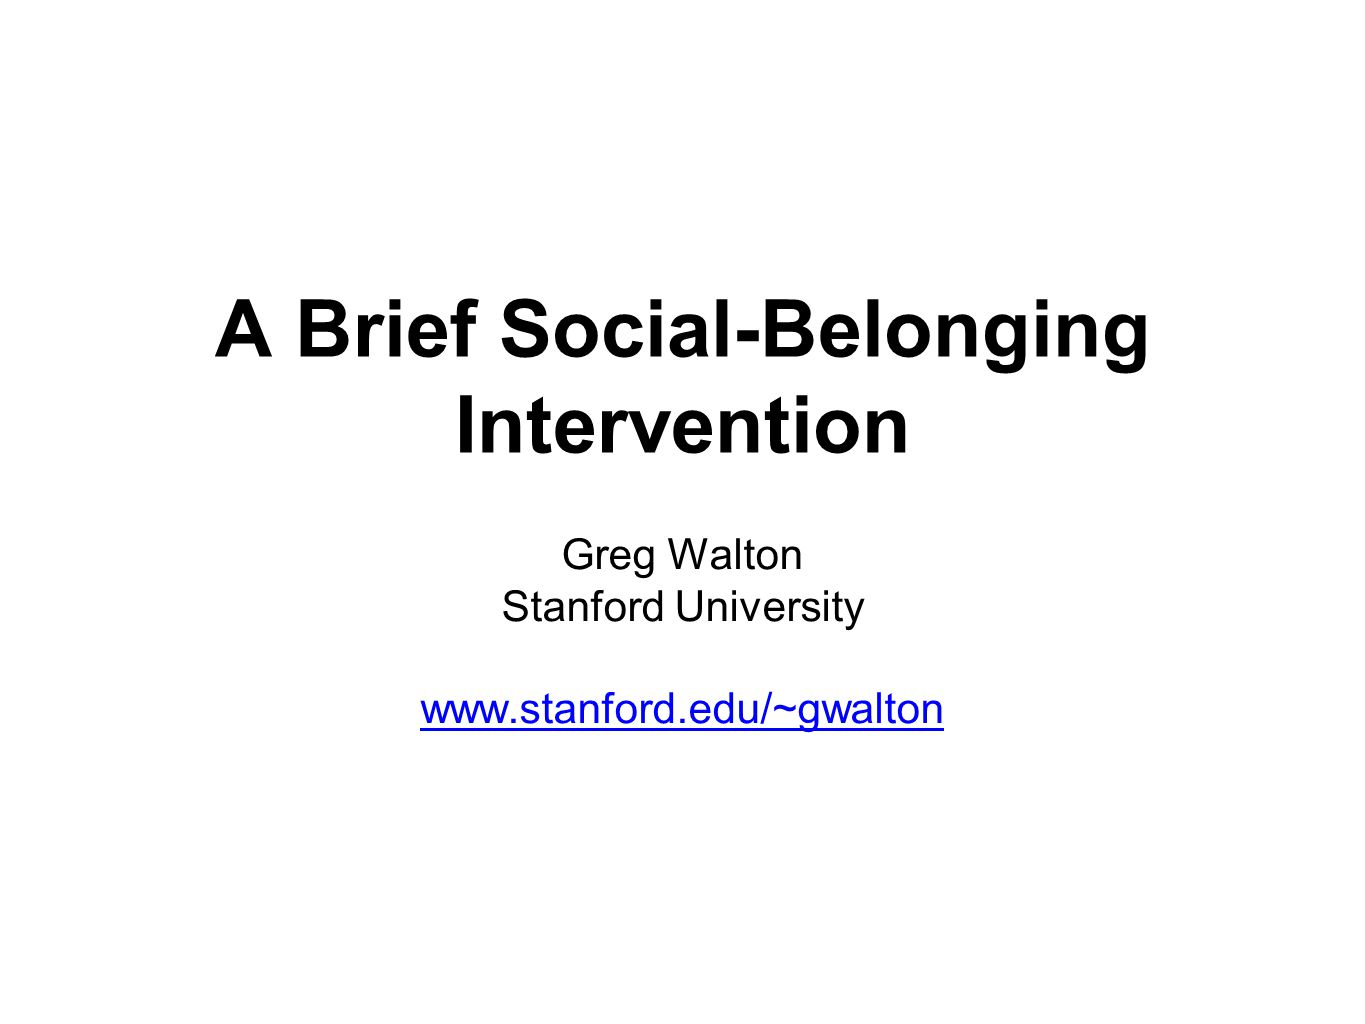 A Brief Social-Belonging Intervention Greg Walton Stanford University www.stanford.edu/~gwalton